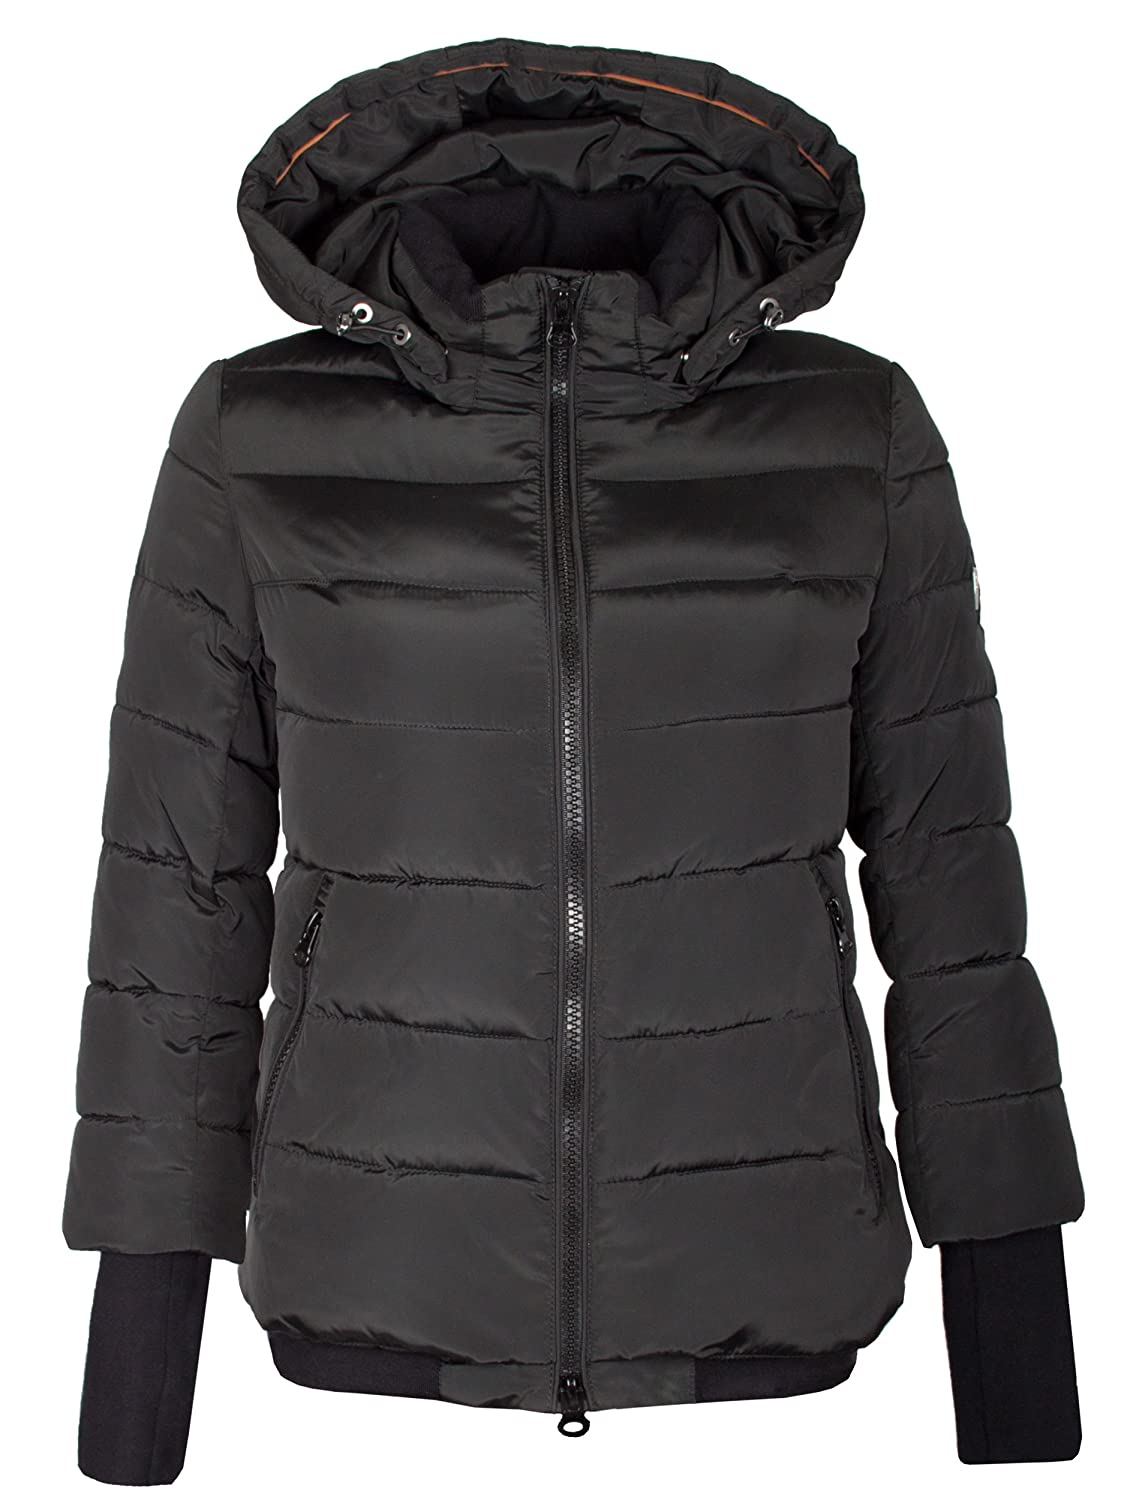 Q136 Damen Winterjacke Daunen - Optik